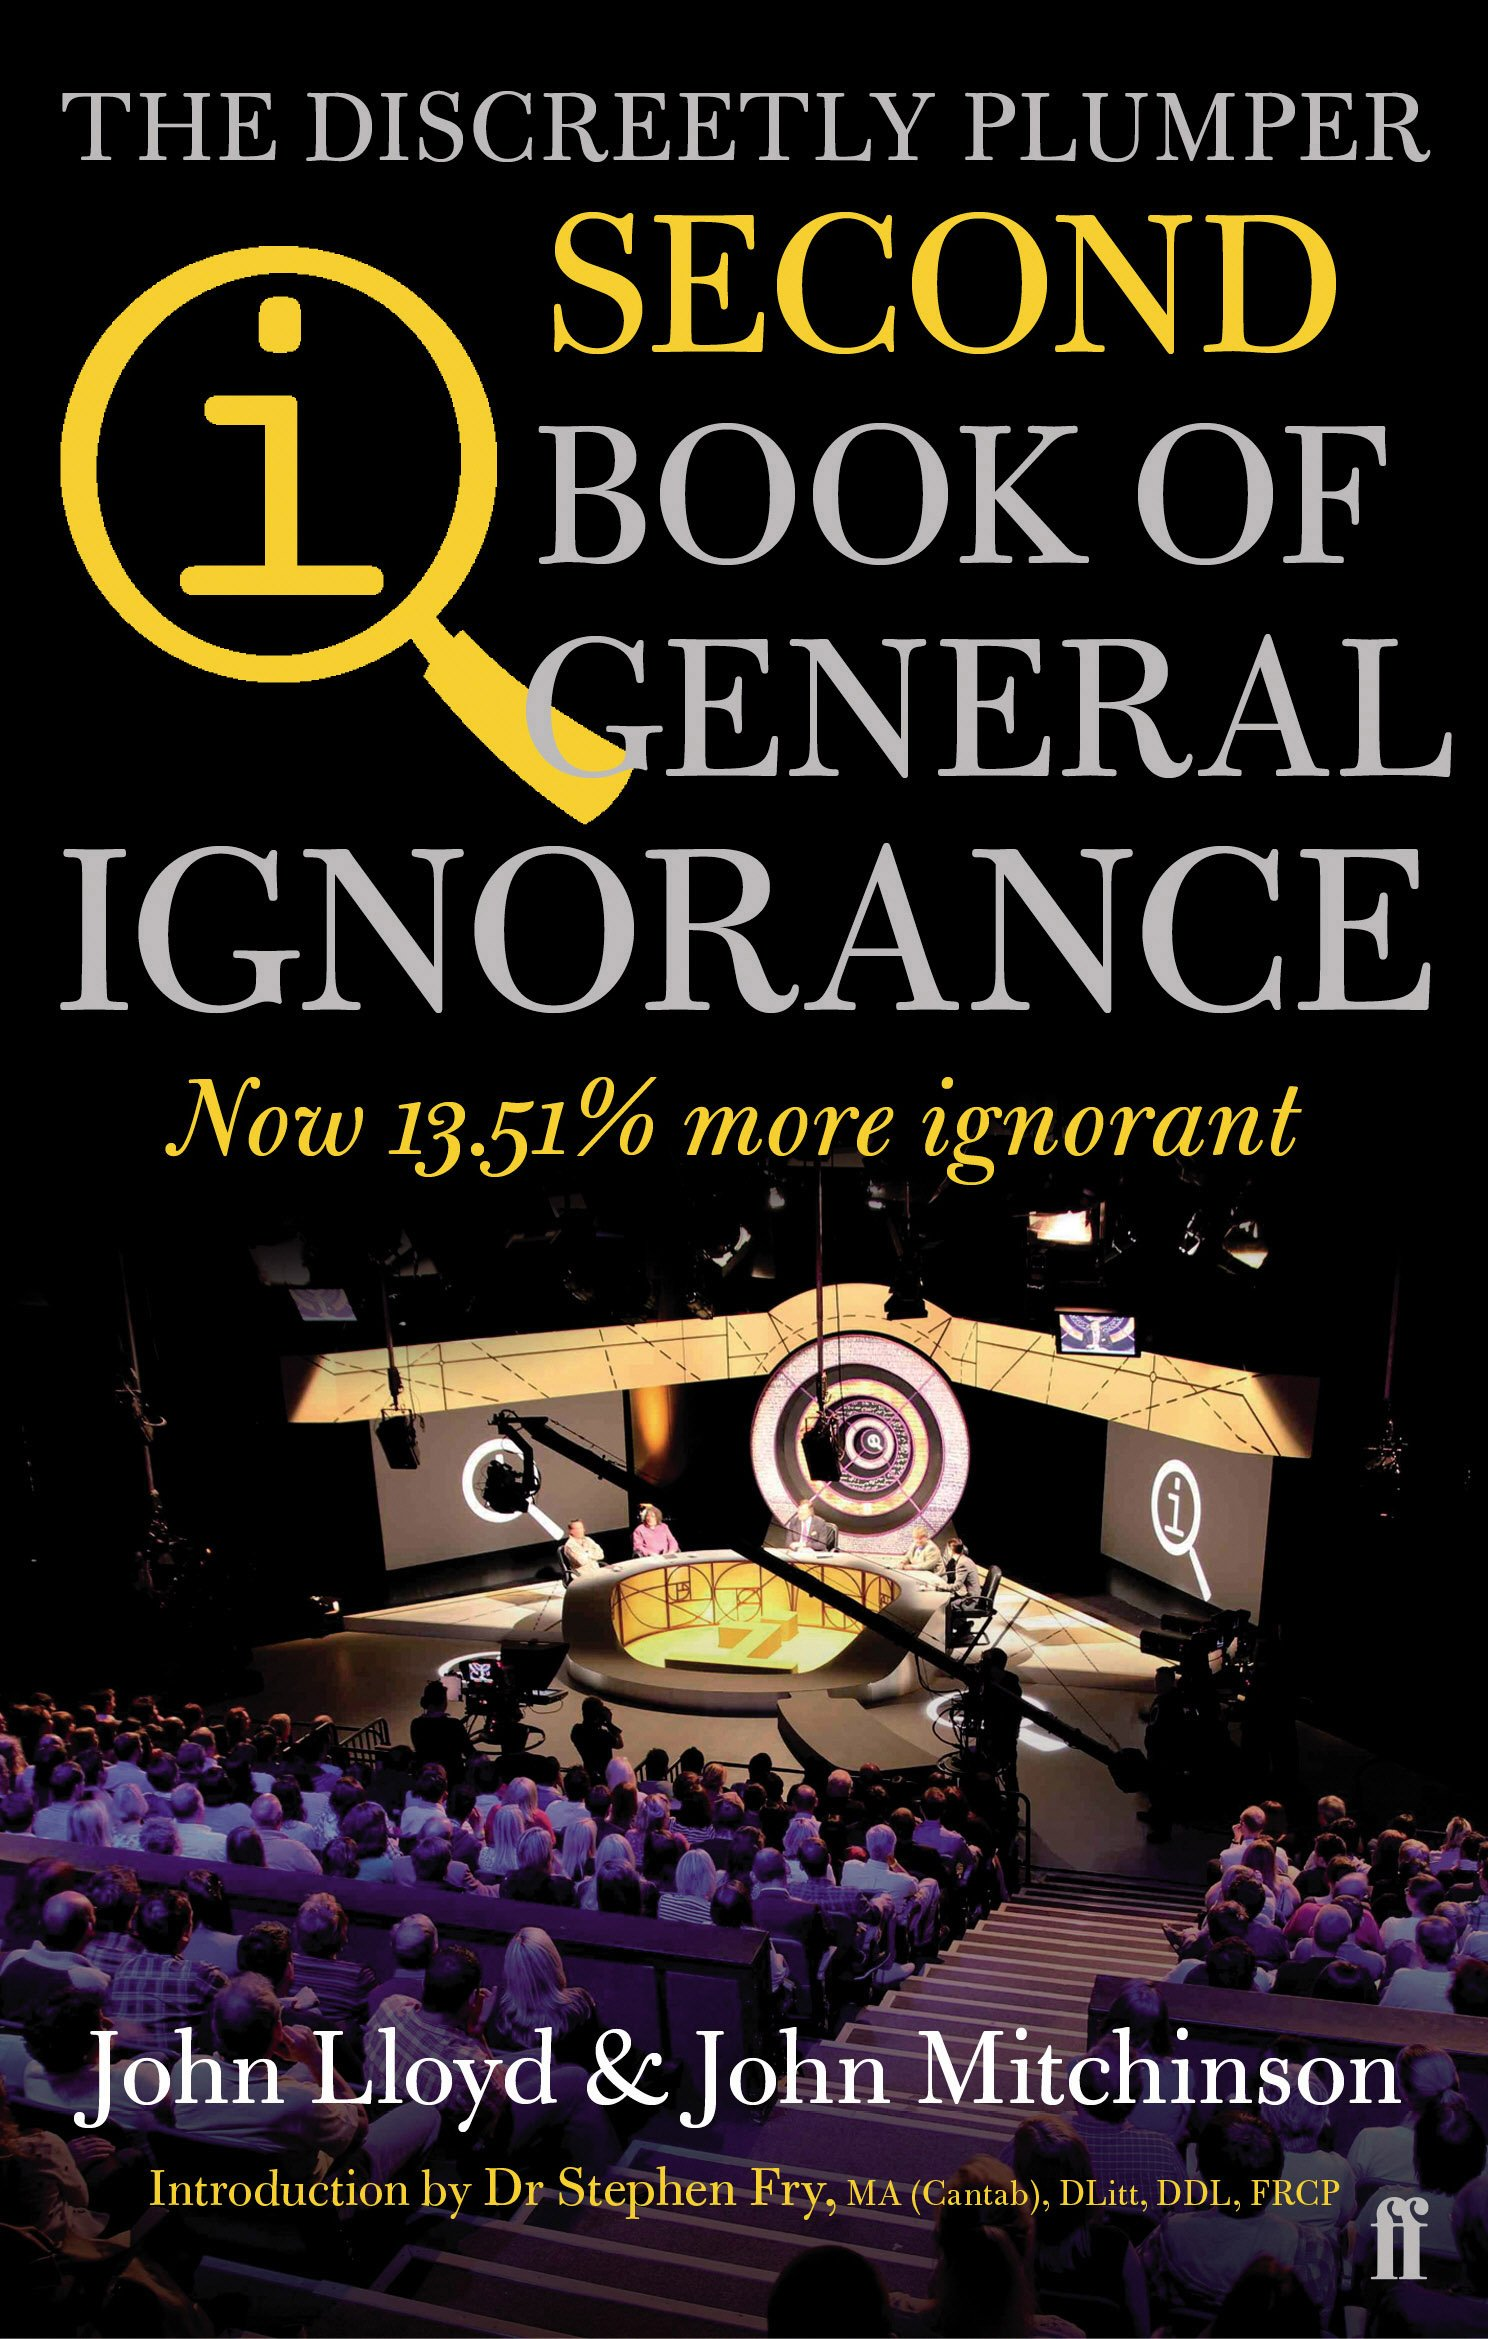 QI: The Second Book of General Ignorance: The Discreetly Plumper Edition Paperback – 2012 John Lloyd Faber and Faber 0571290728 Home & Garden - General